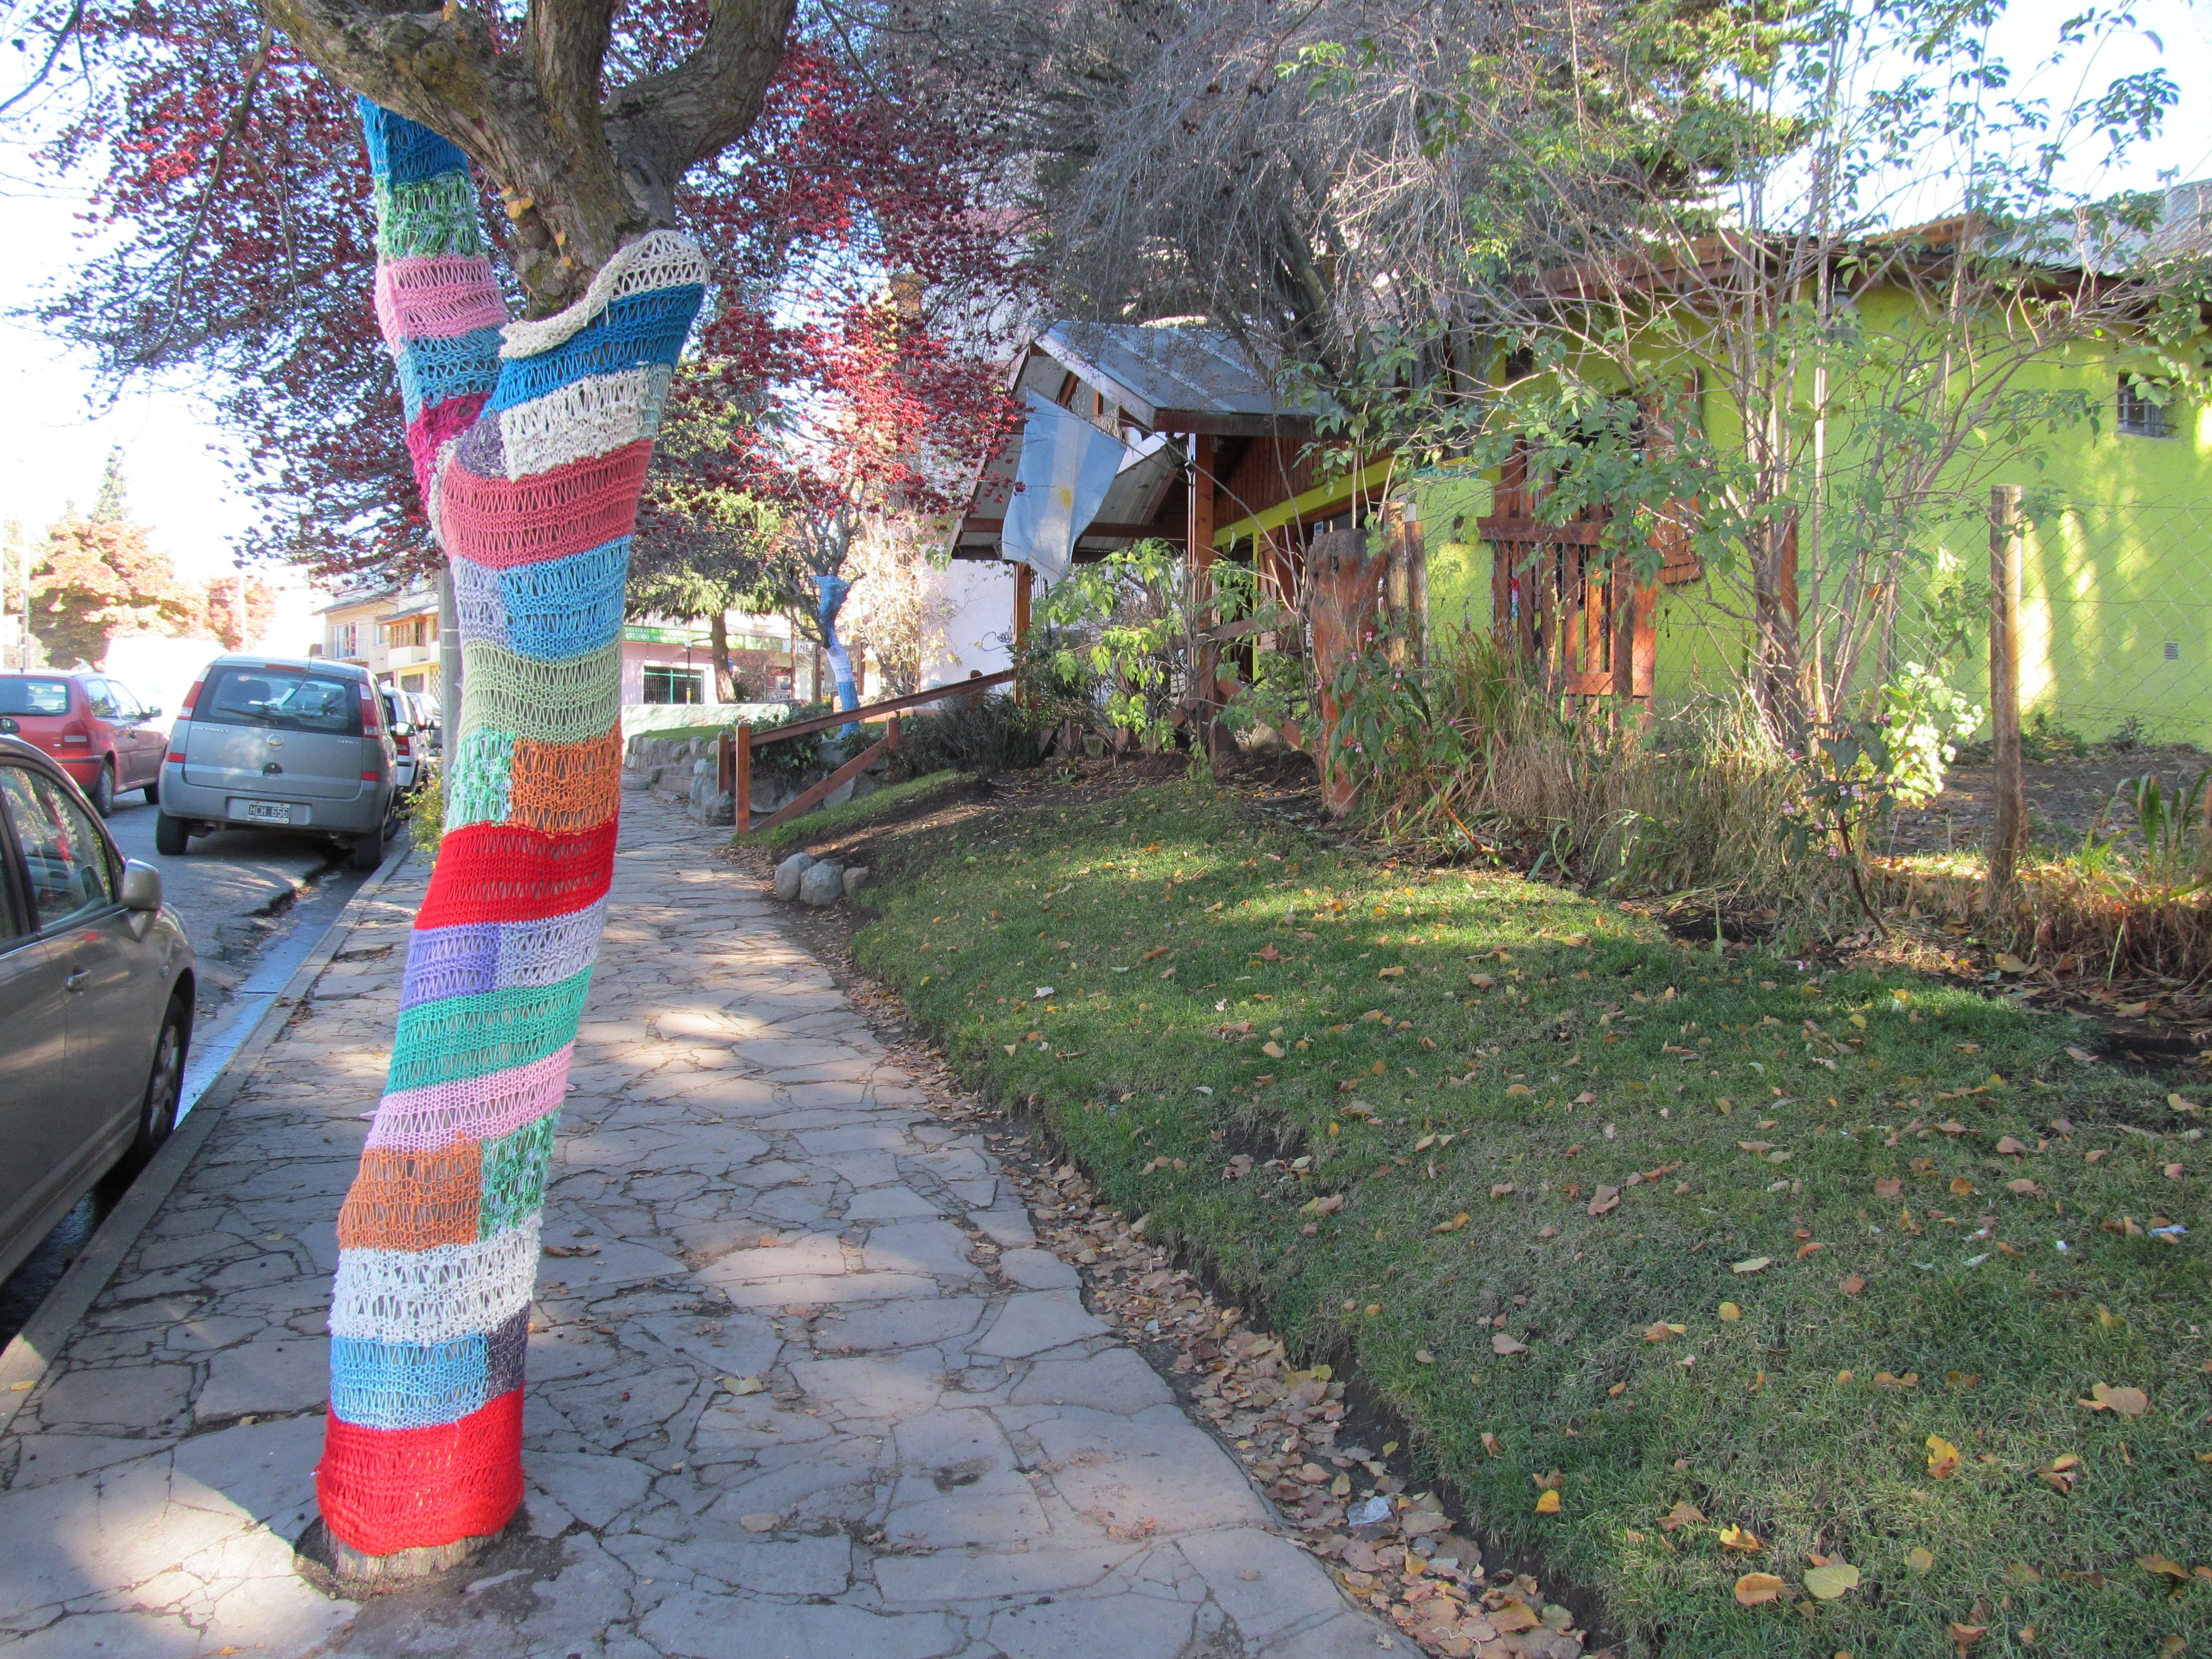 At Bariloche, where even trees wear sweaters.